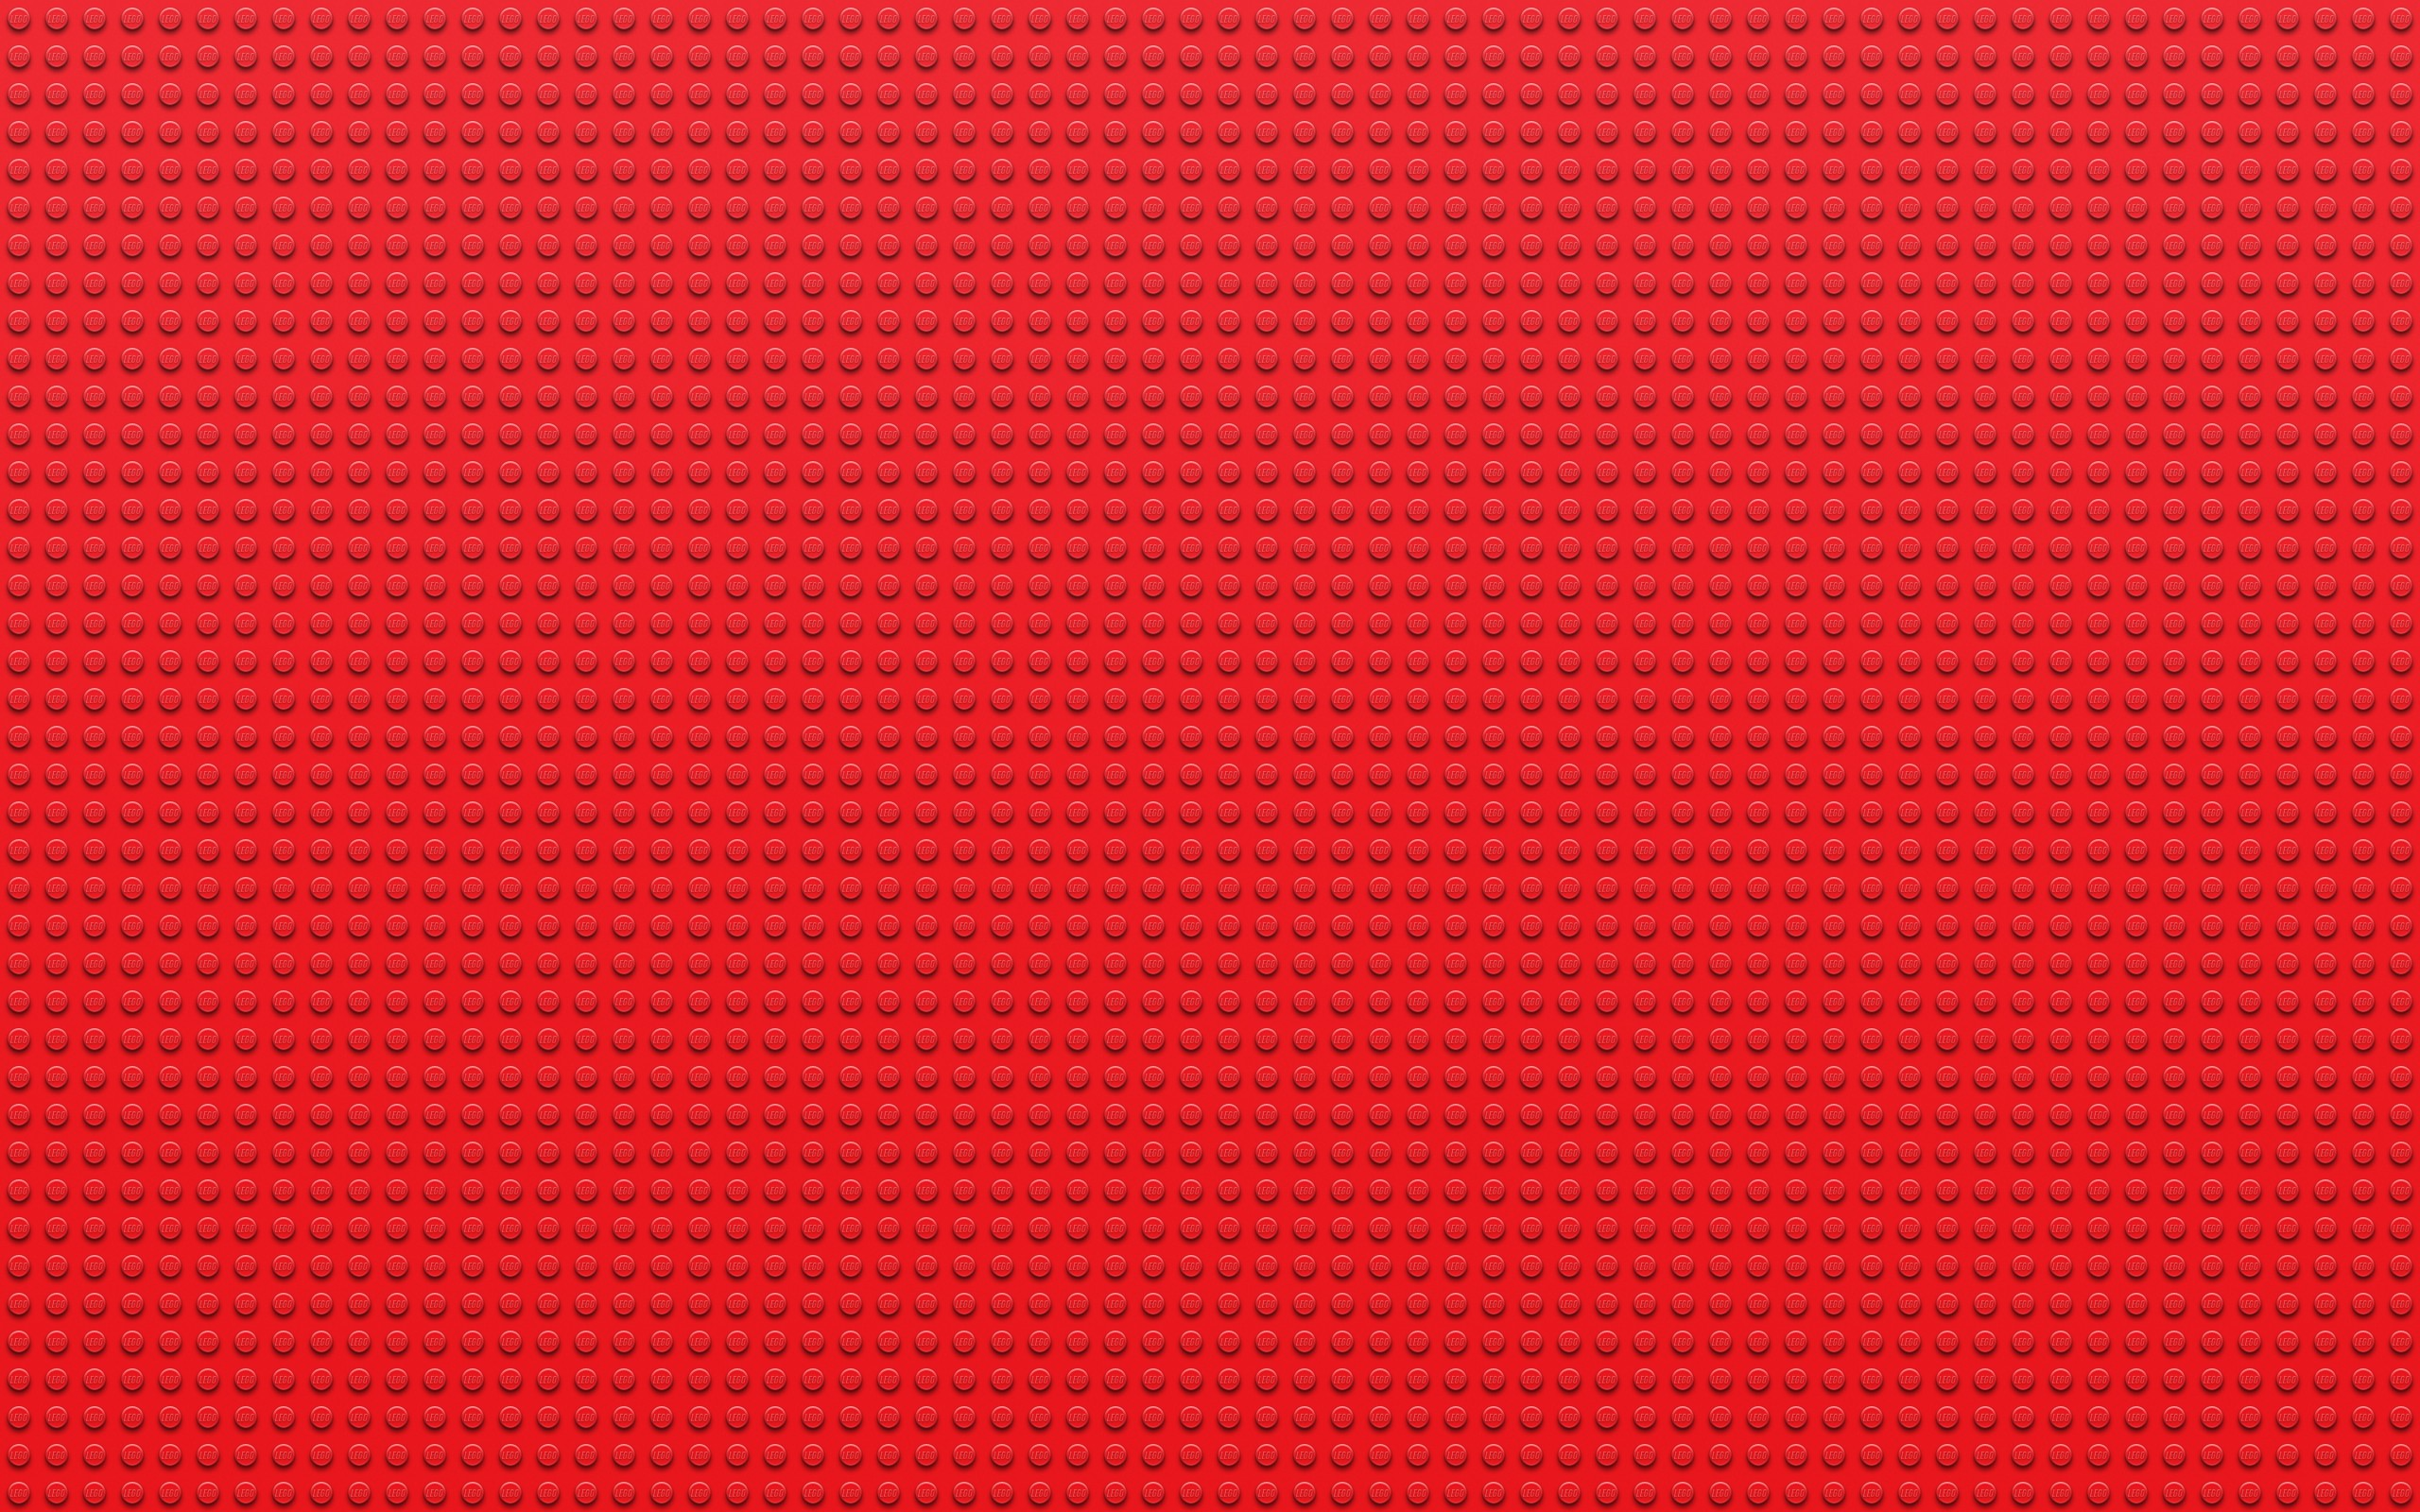 Red lego red vs blue red texture background textures geprek com 2560x1600